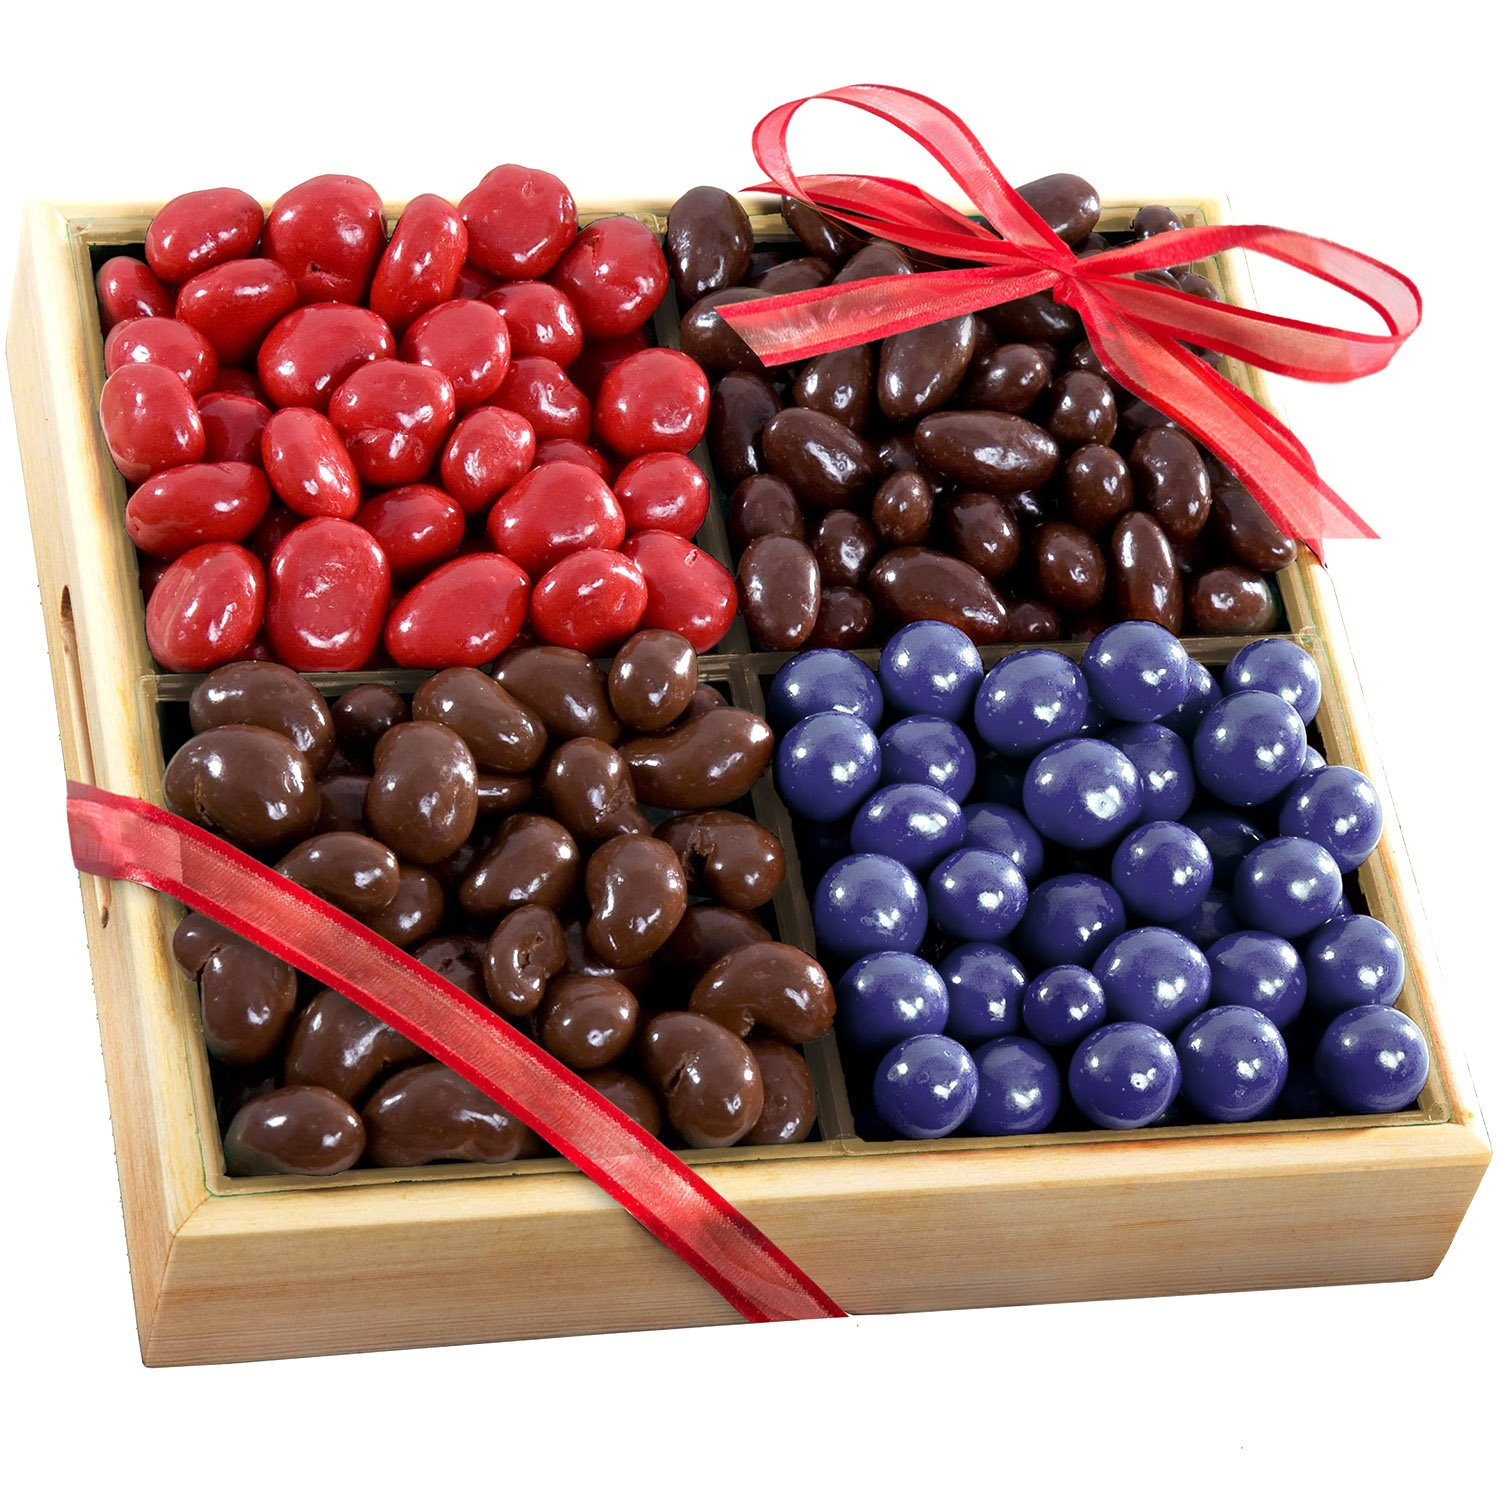 Amazon.com : Golden State Fruit Chocolate Covered Bliss Fruit and ...